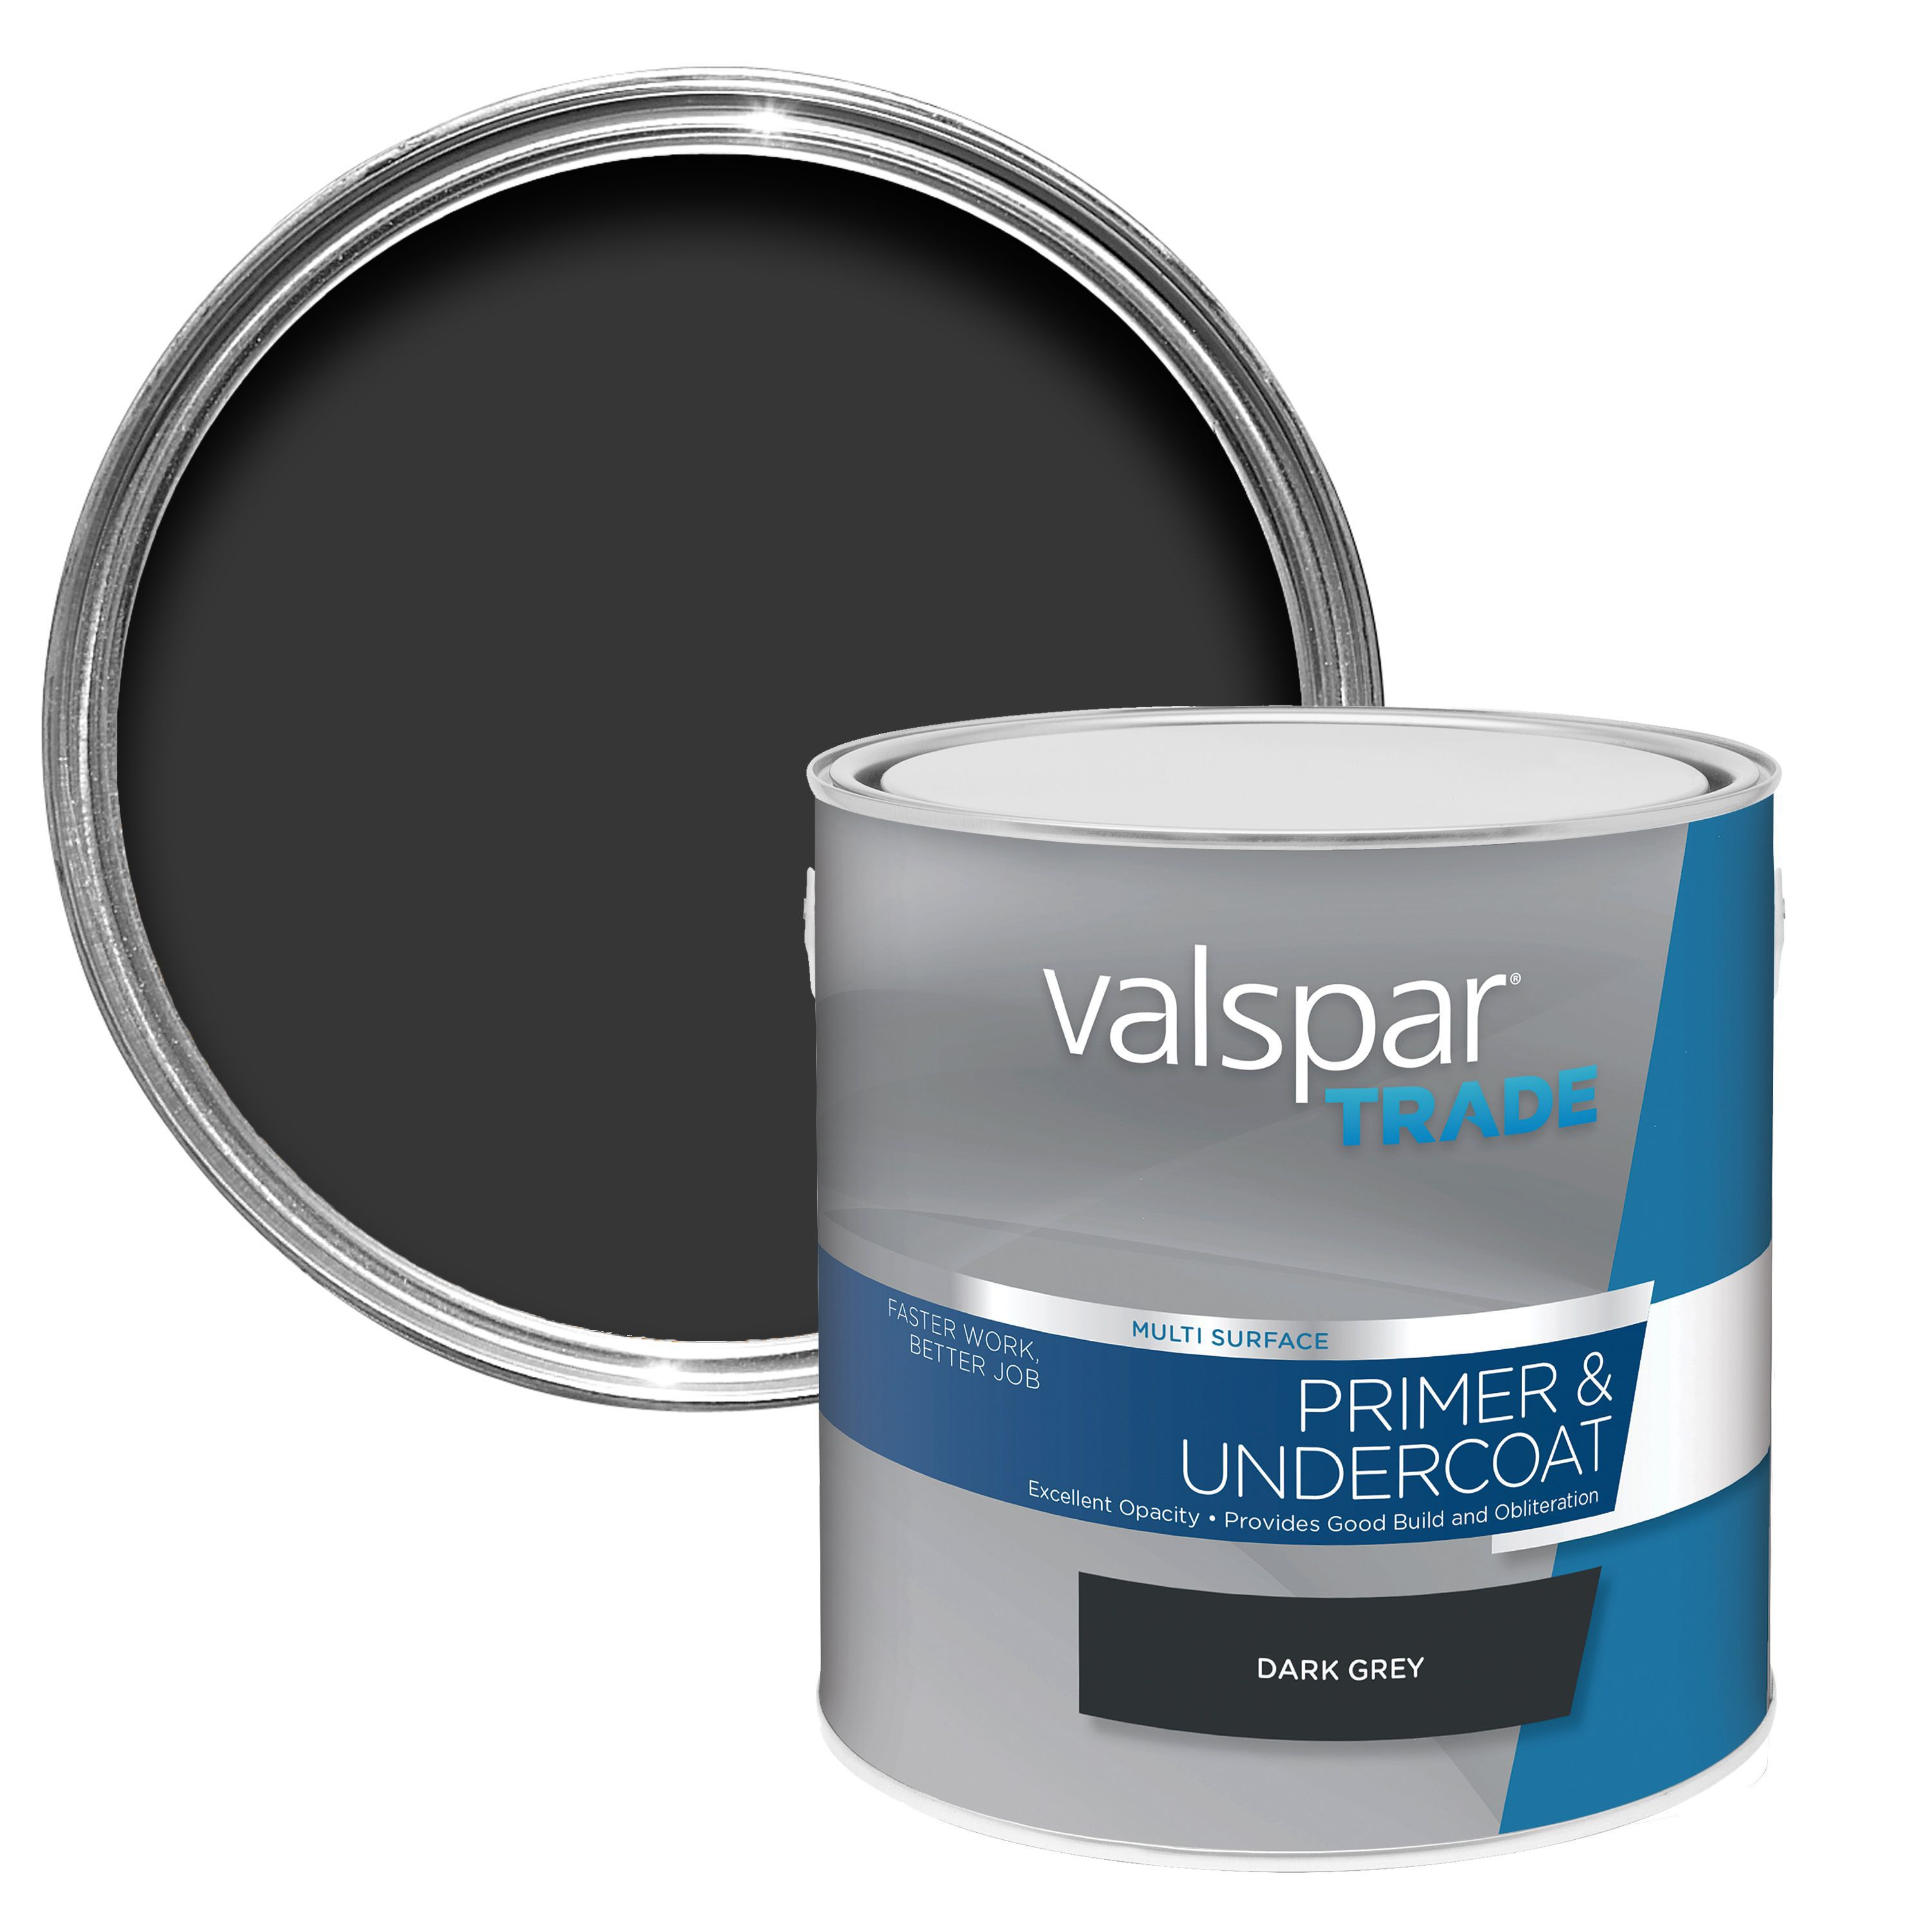 Valspar Interior Paint With Primer For Wood